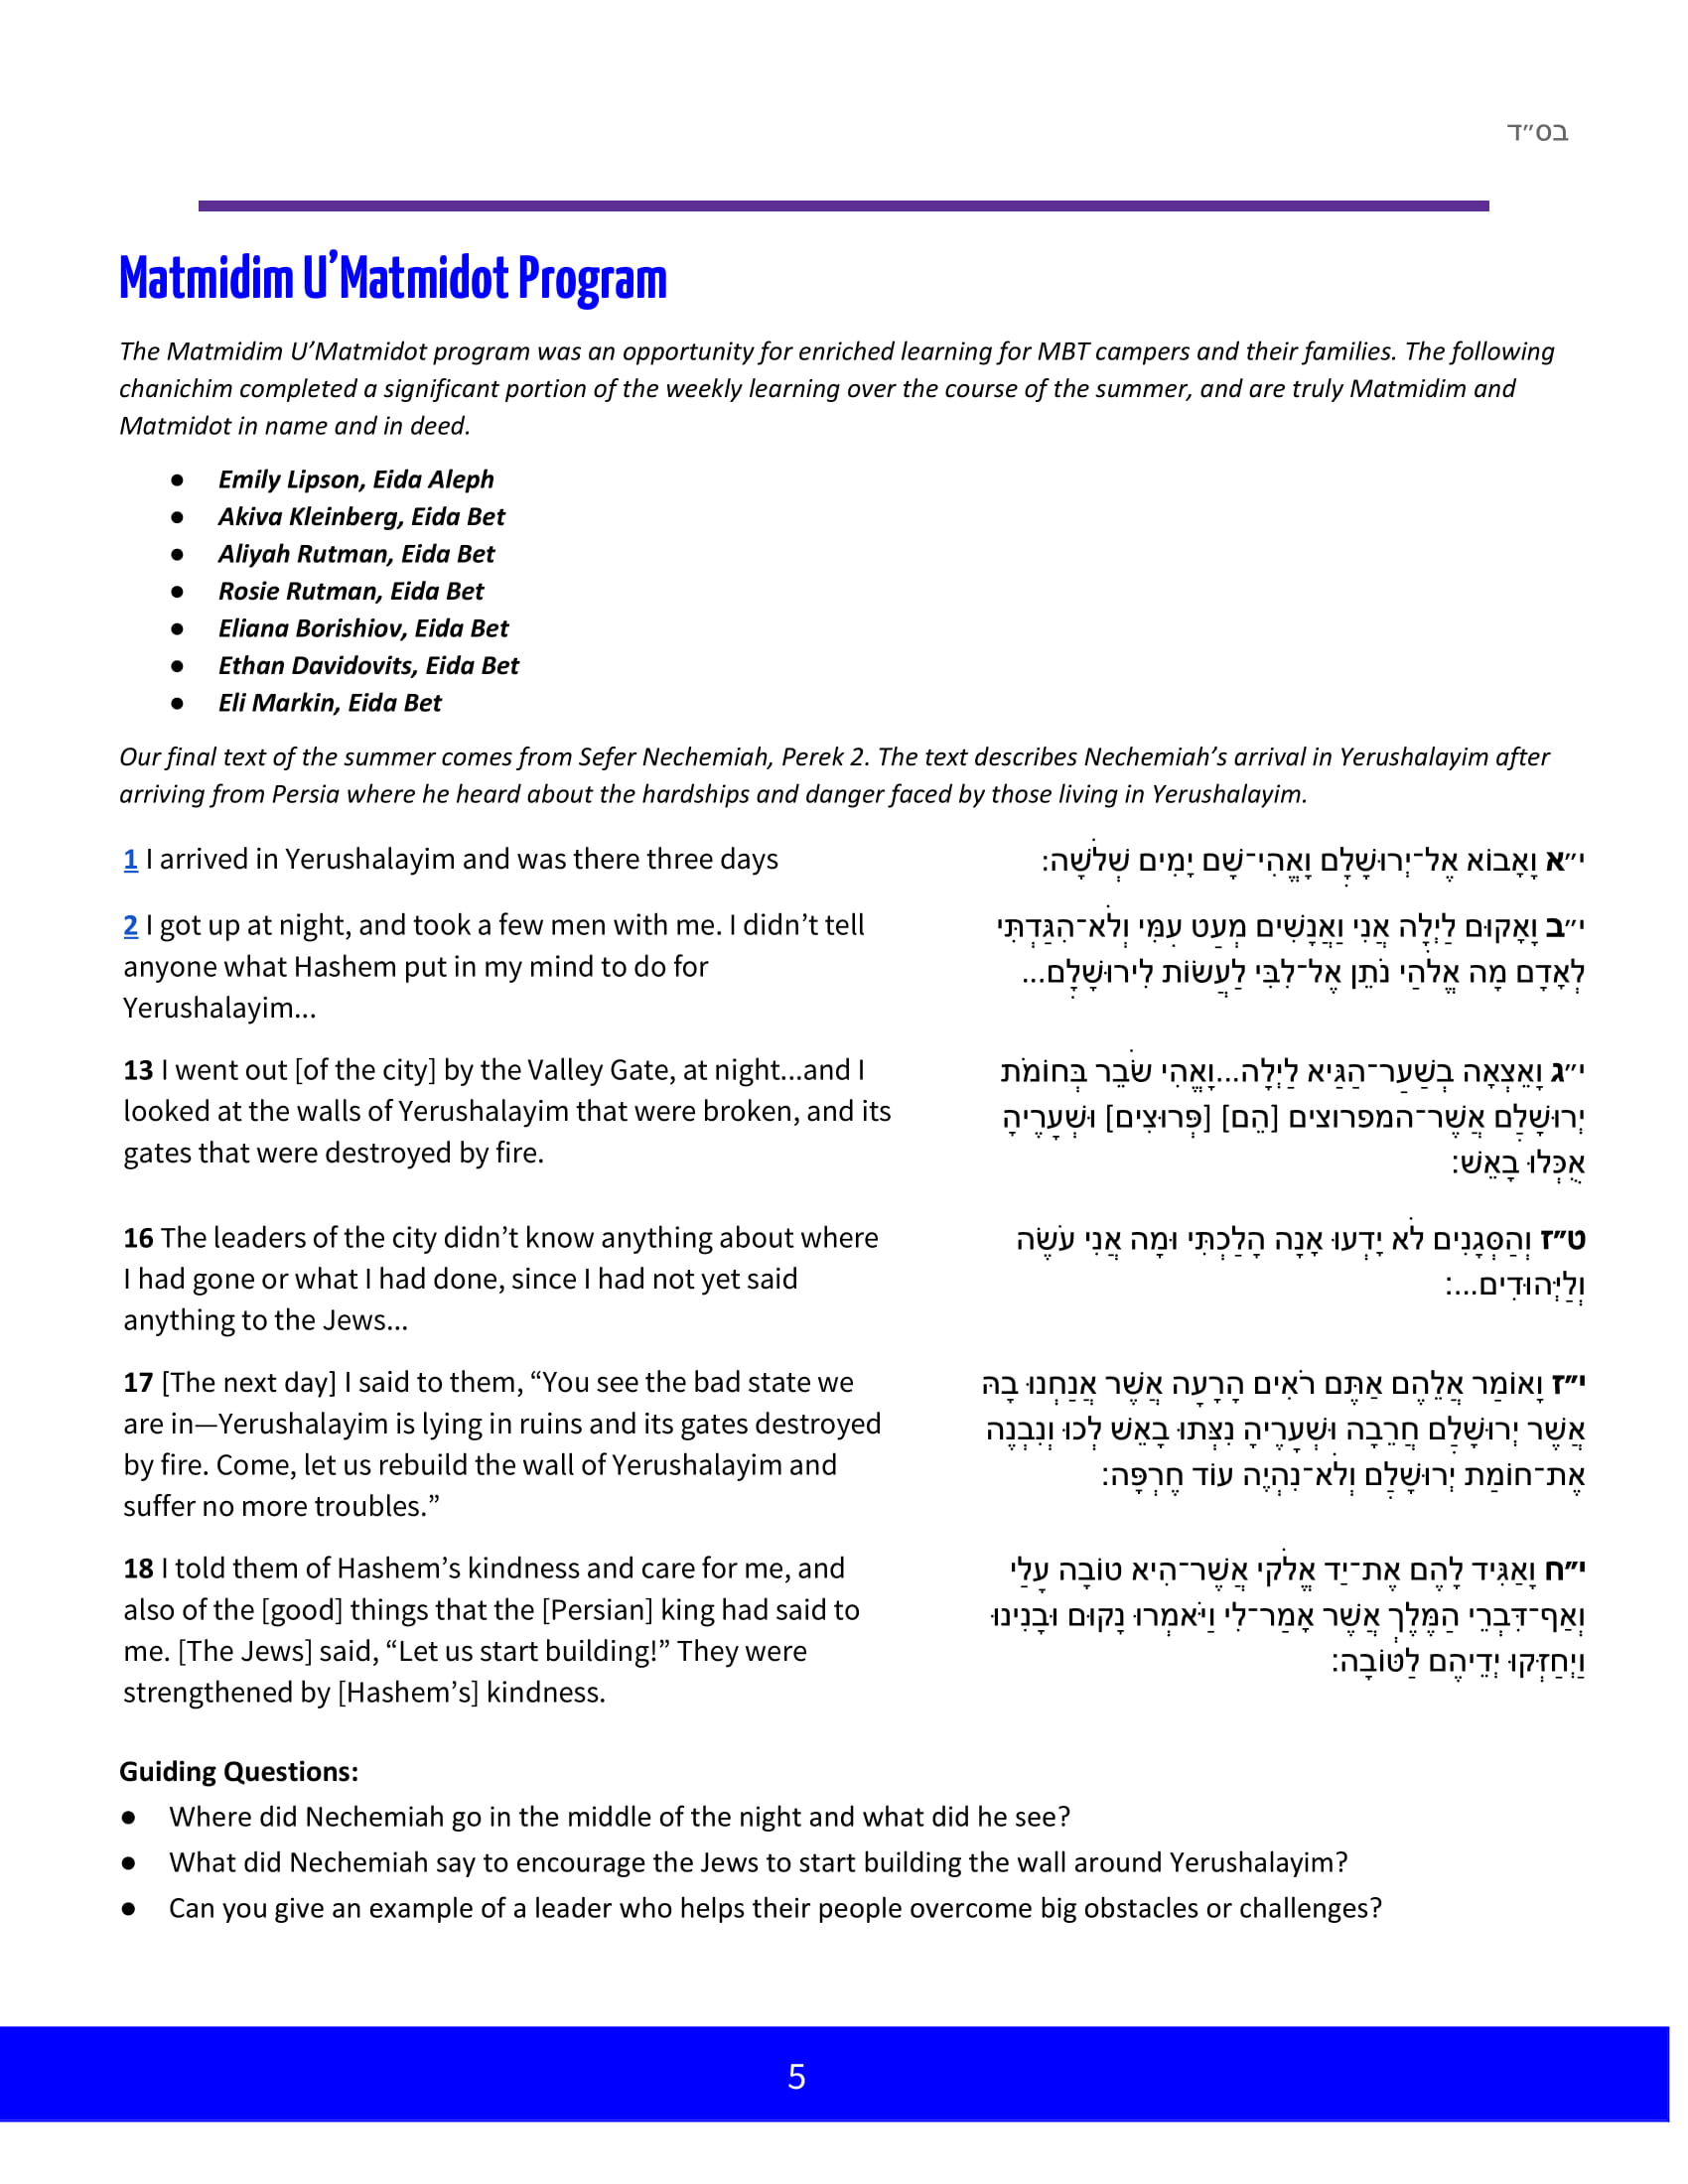 Weekly Chinuch Newsletter_ Shivat Tzion 2 (Week 7)-5.jpg